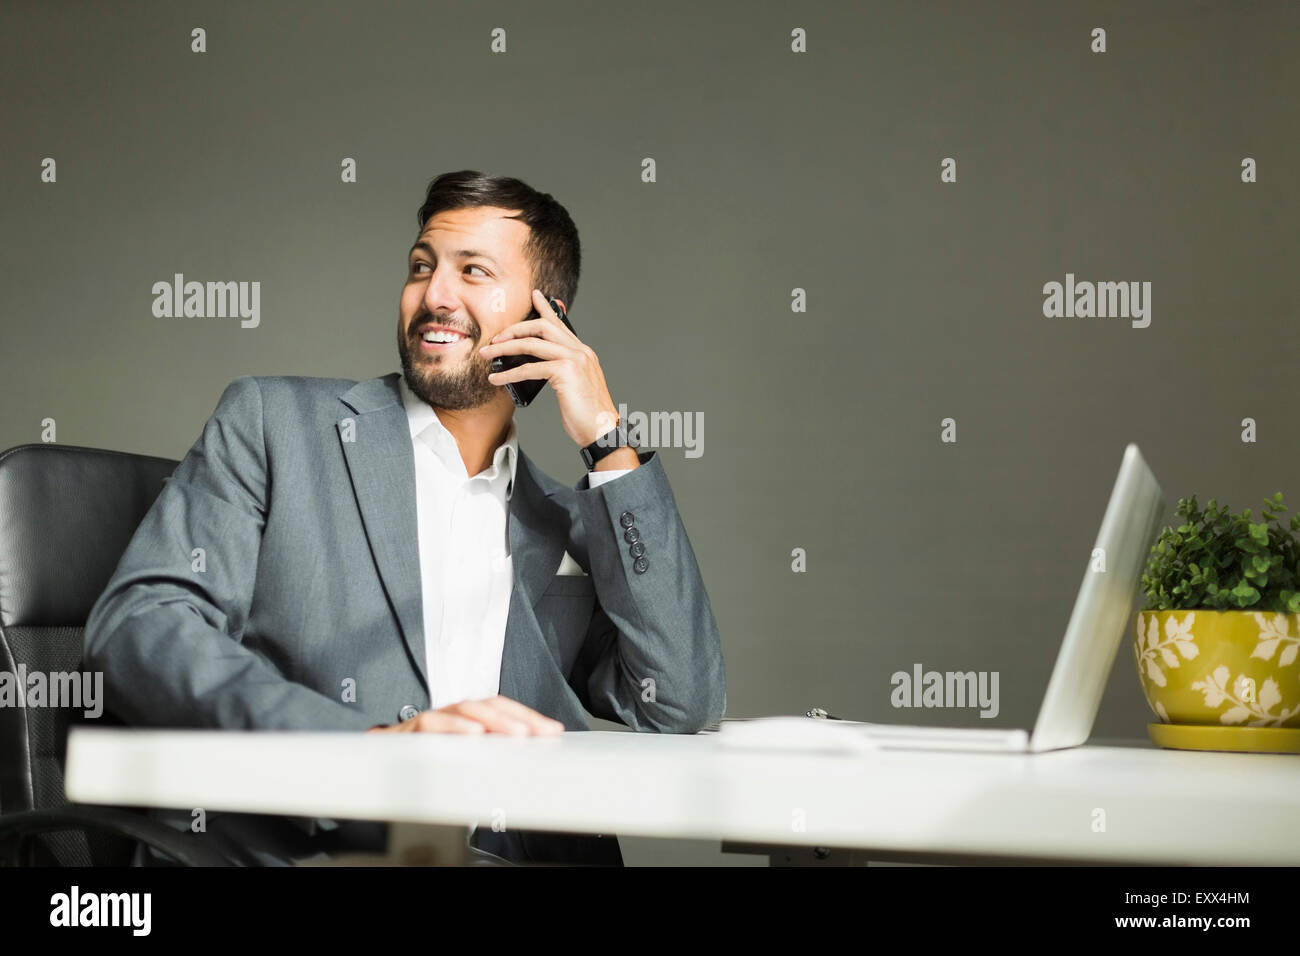 Young man sitting at desk and talking on phone Stock Photo